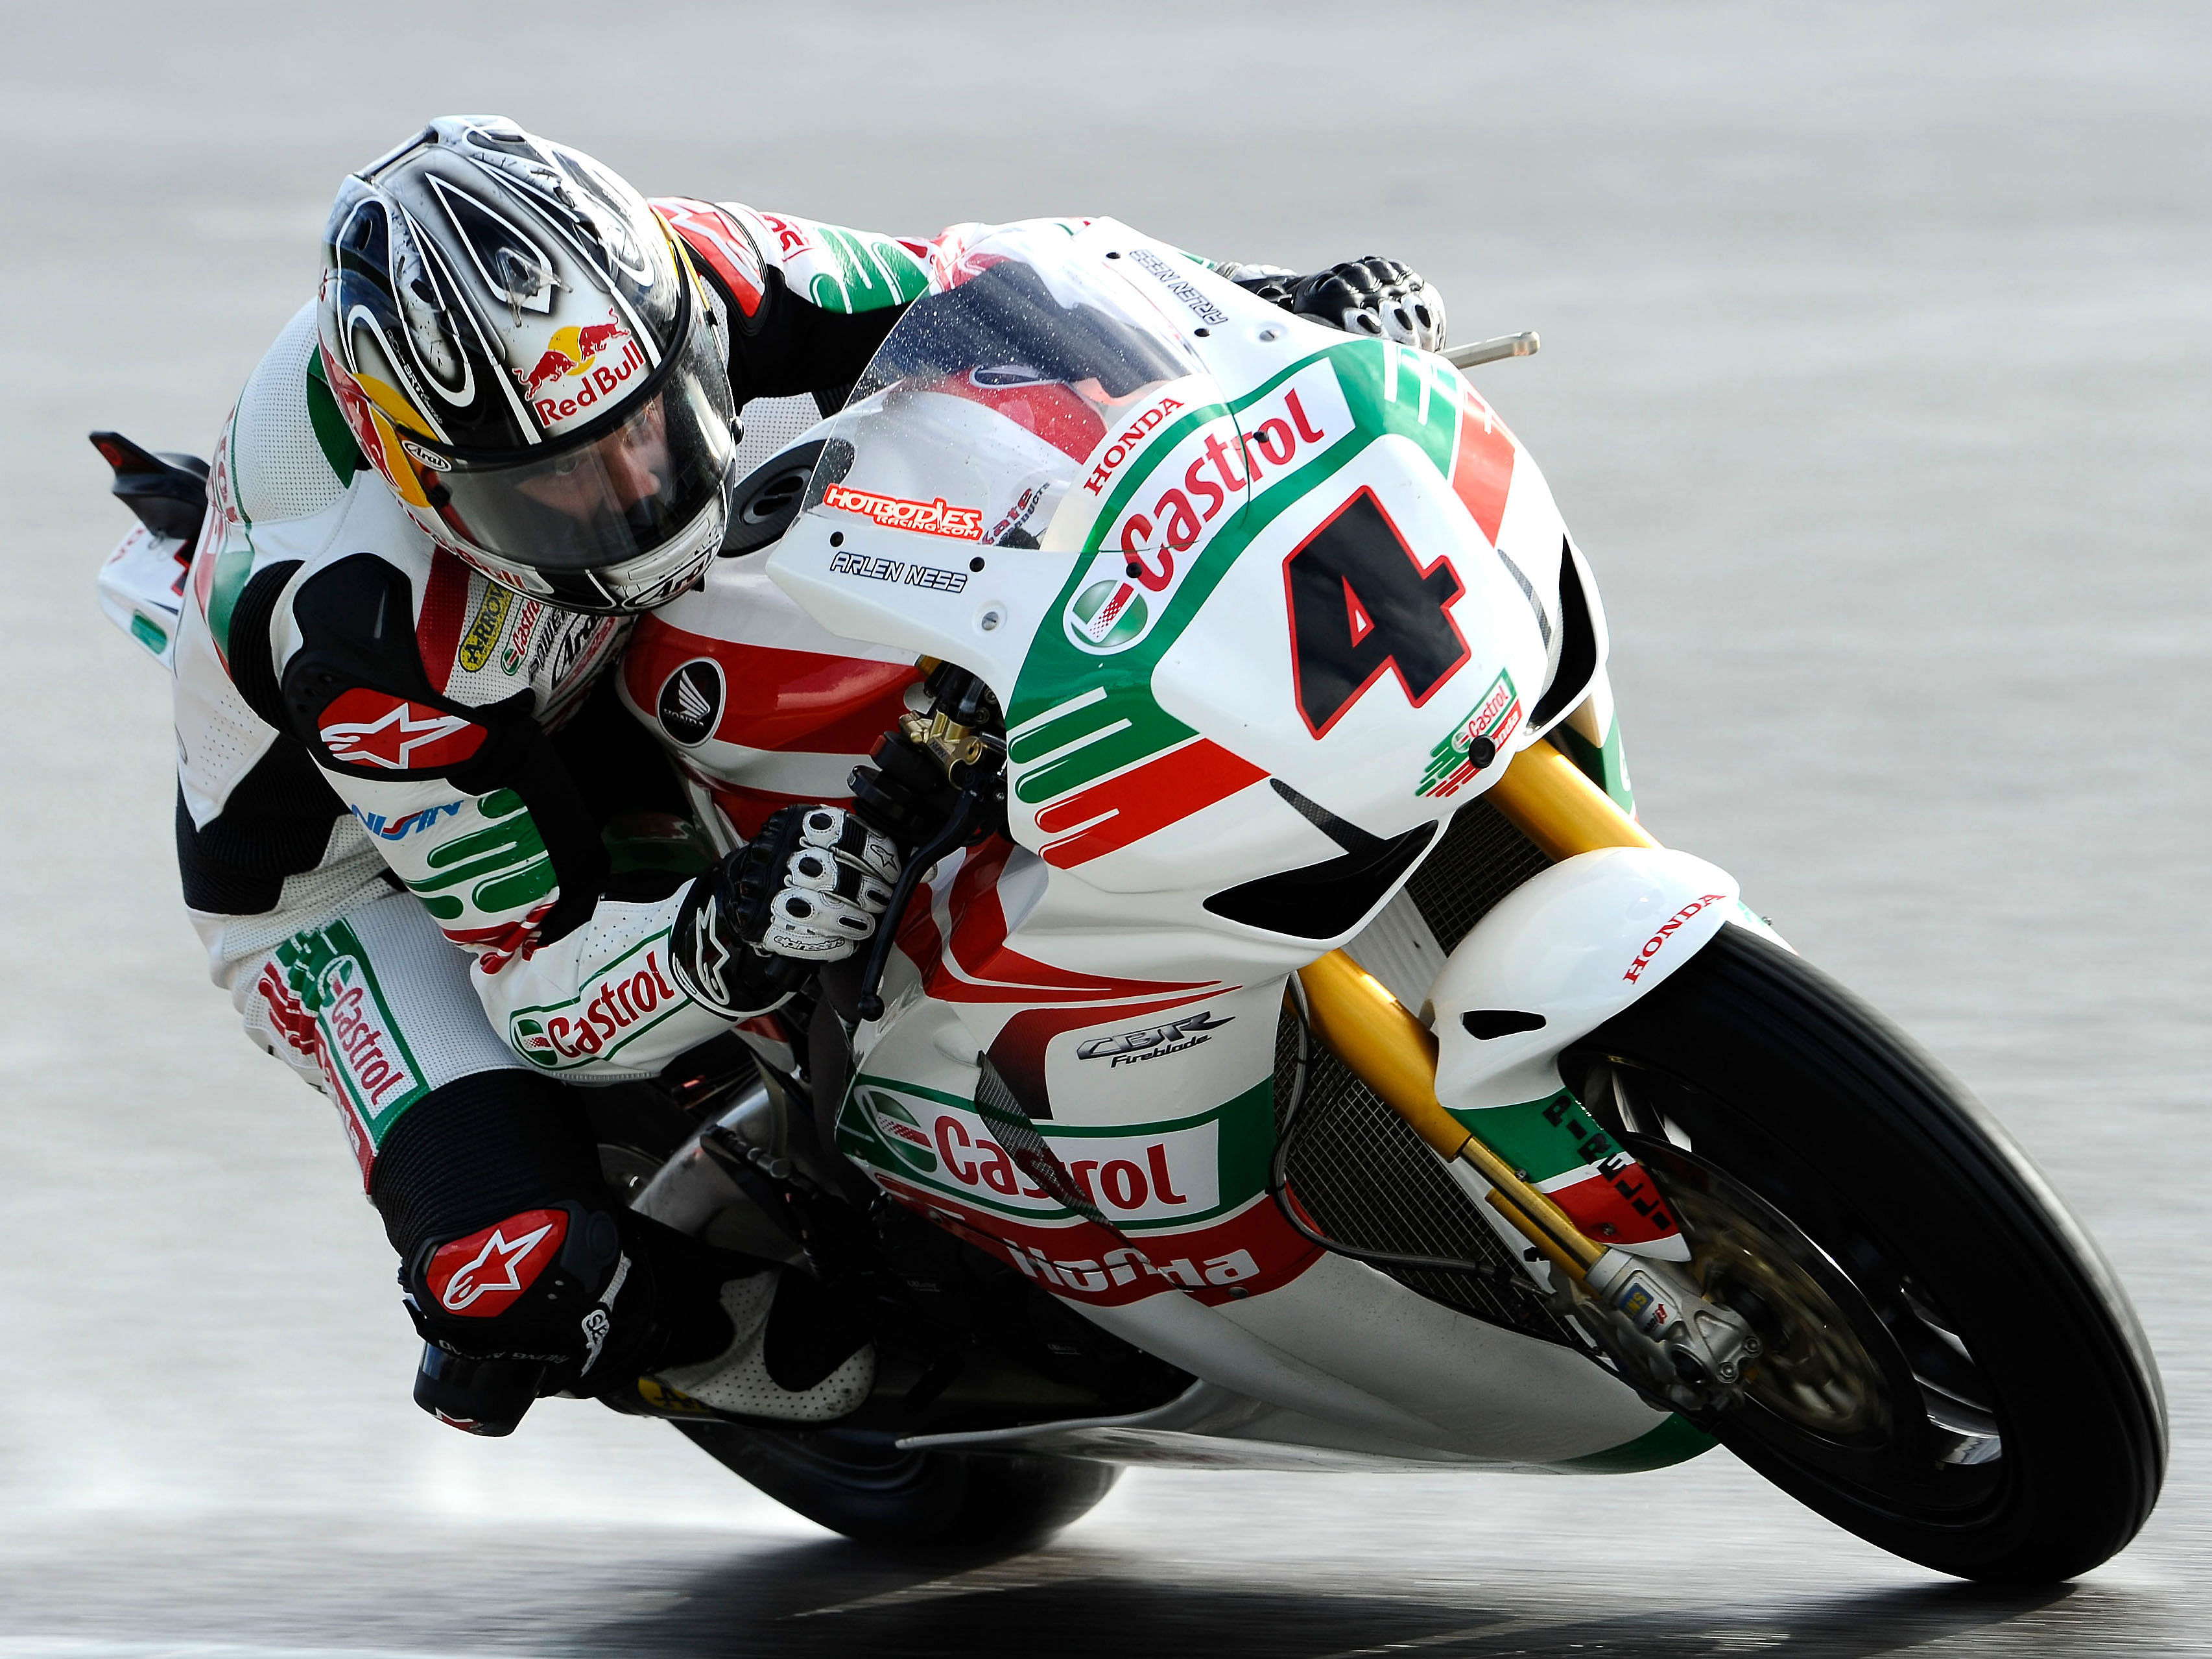 World Super Bike: Rea hopes to make a podium finish in Monza